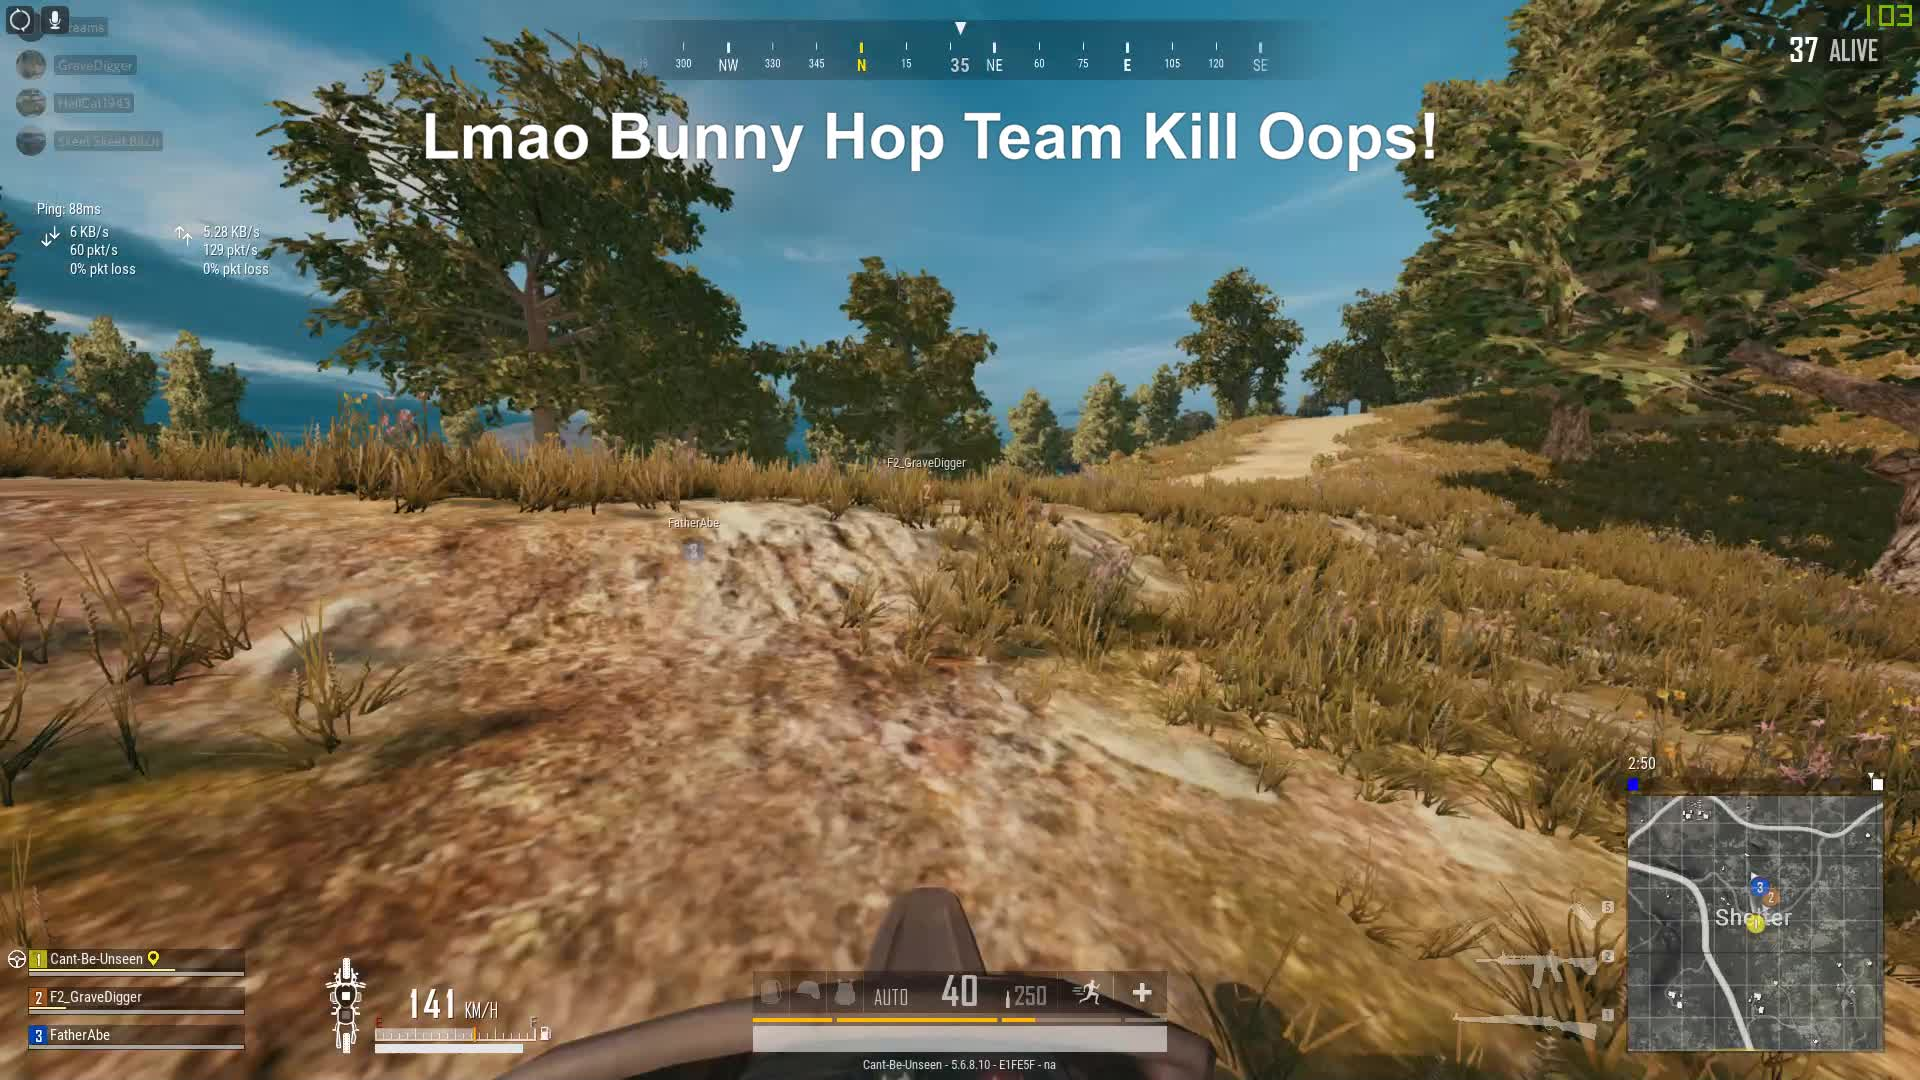 pubattlegrounds, pubg, Bunny Hopping Team Kill Oopsies ahaha GIFs